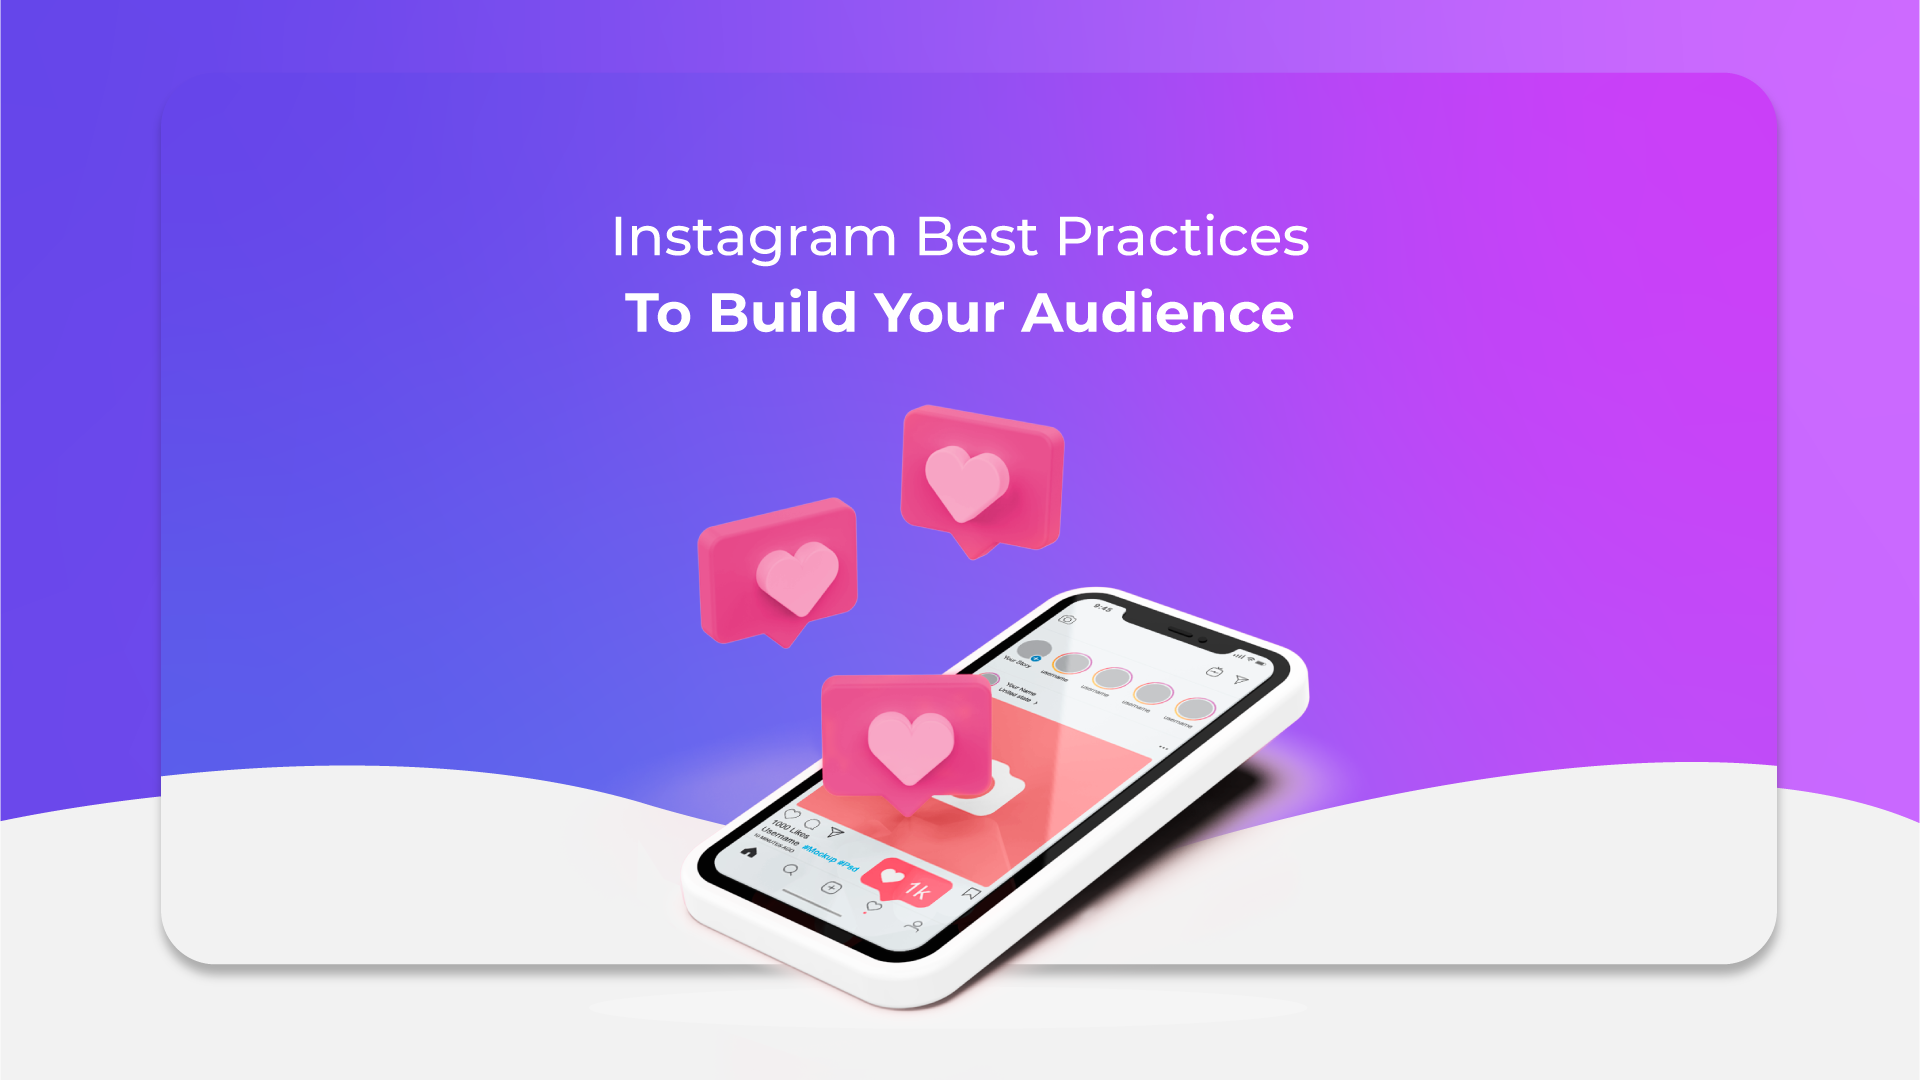 Instagram Best Practices To Build Your Audience